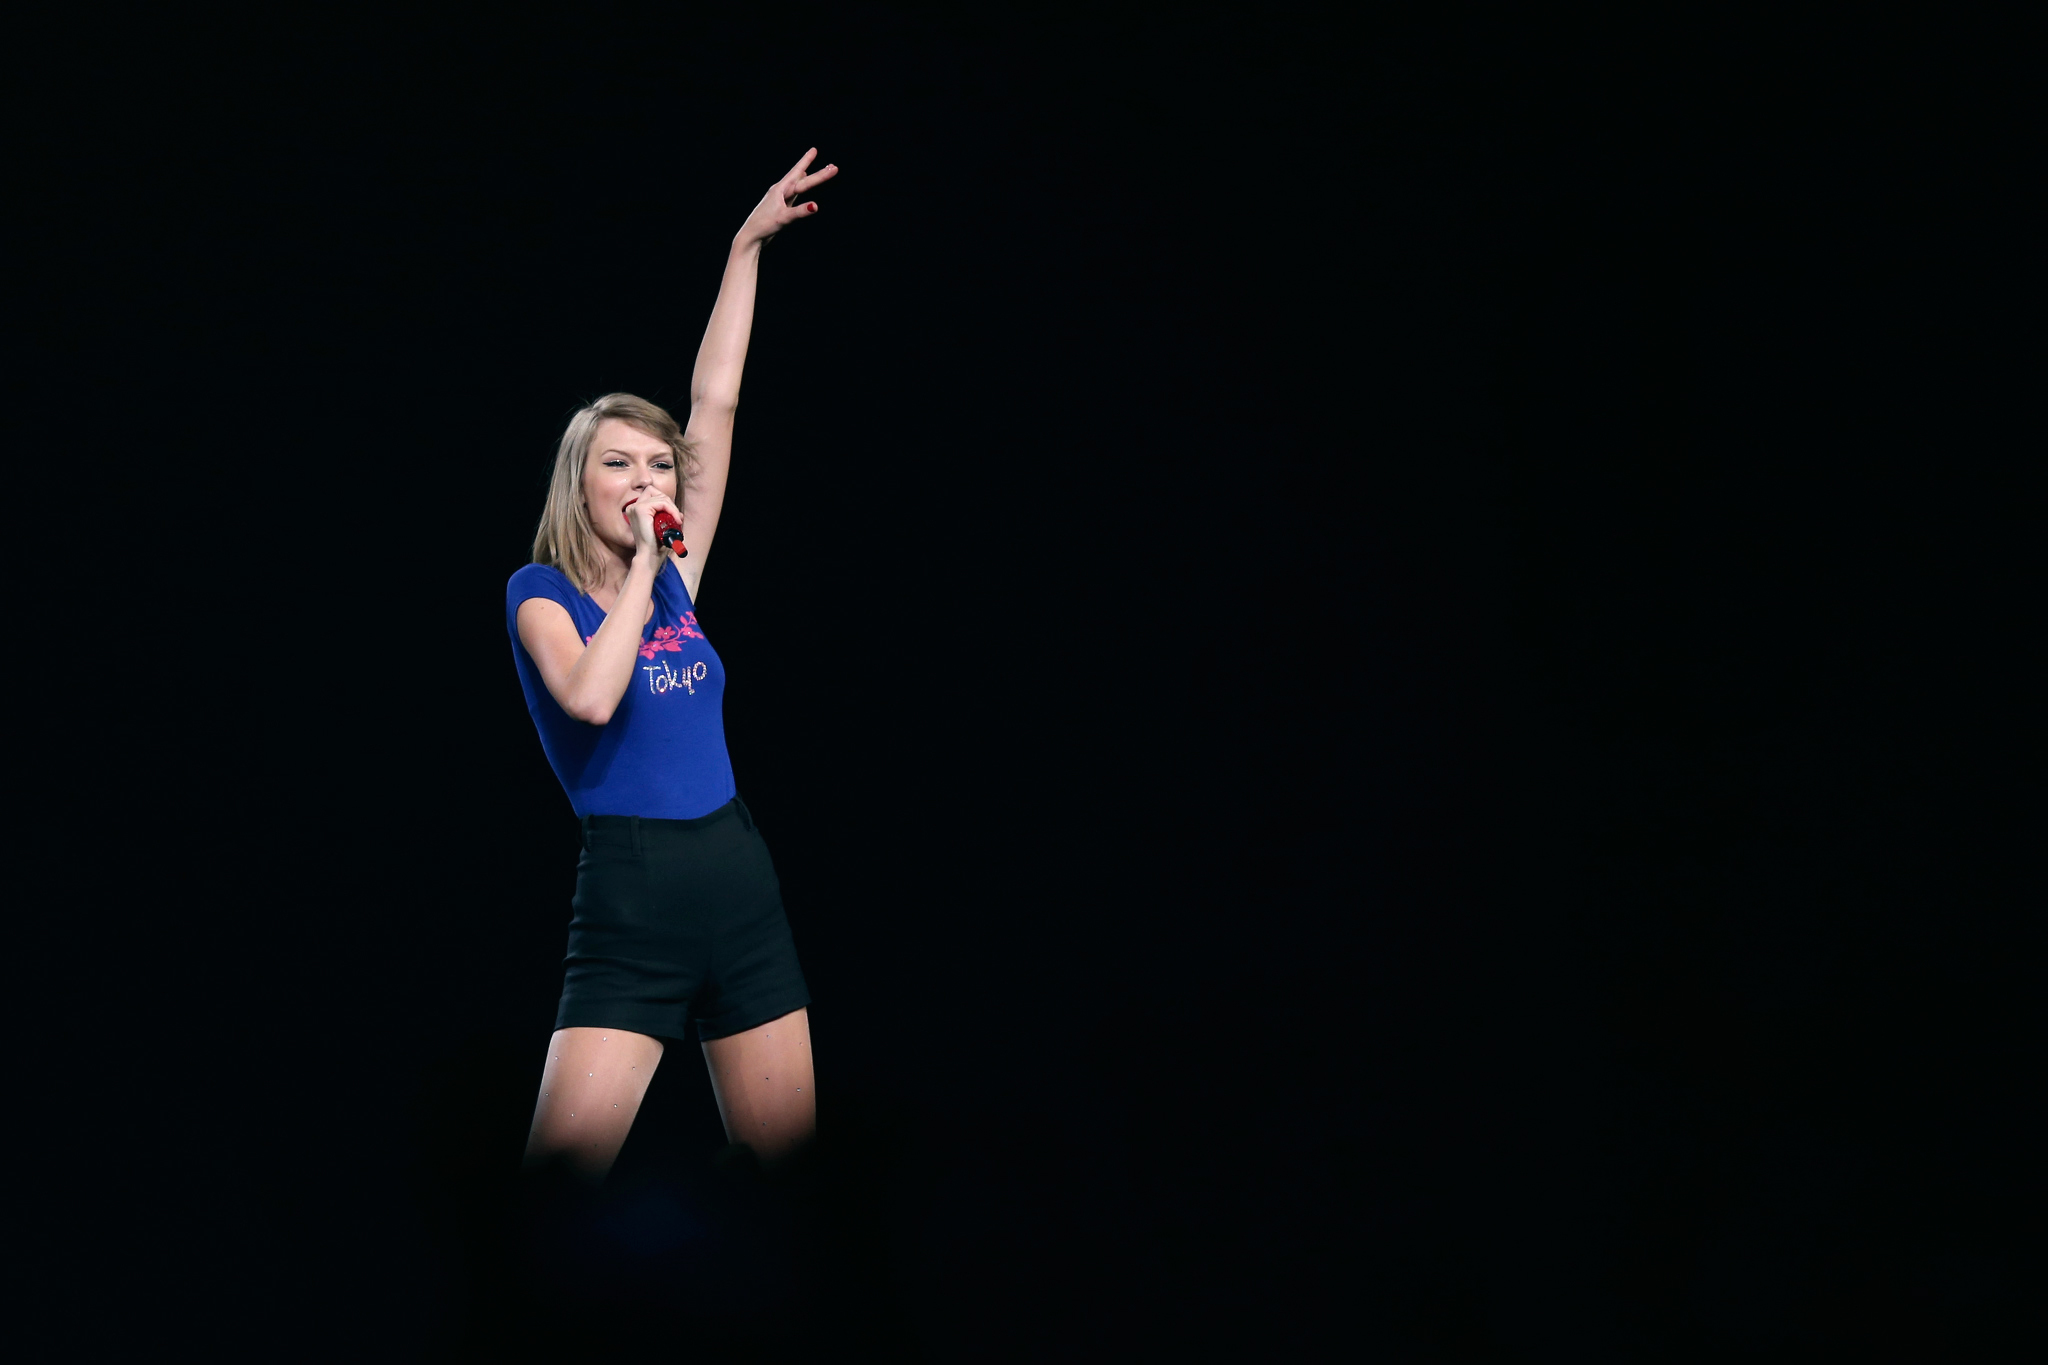 Taylor Swift Red Tour Wallpaper